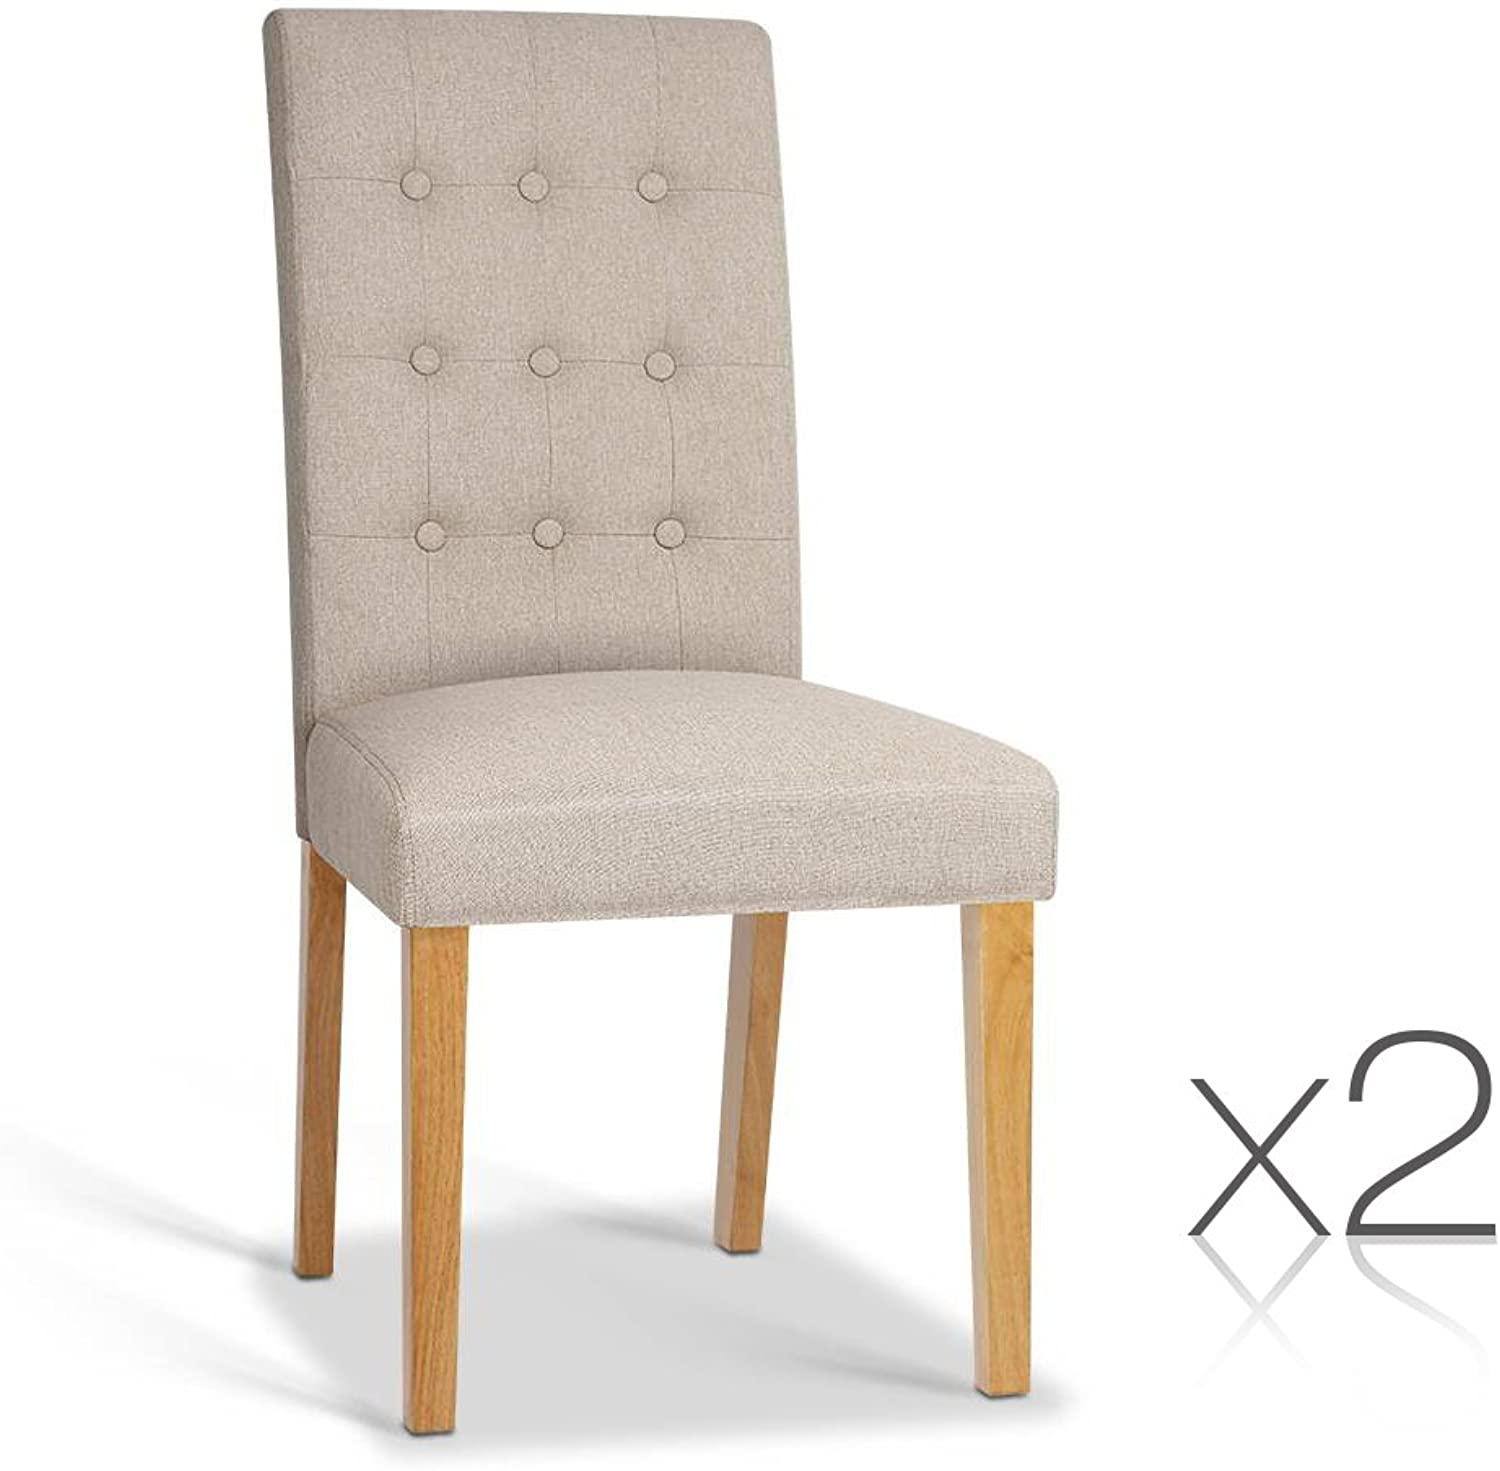 Set of 2 Fabric Dining Chair - Beige